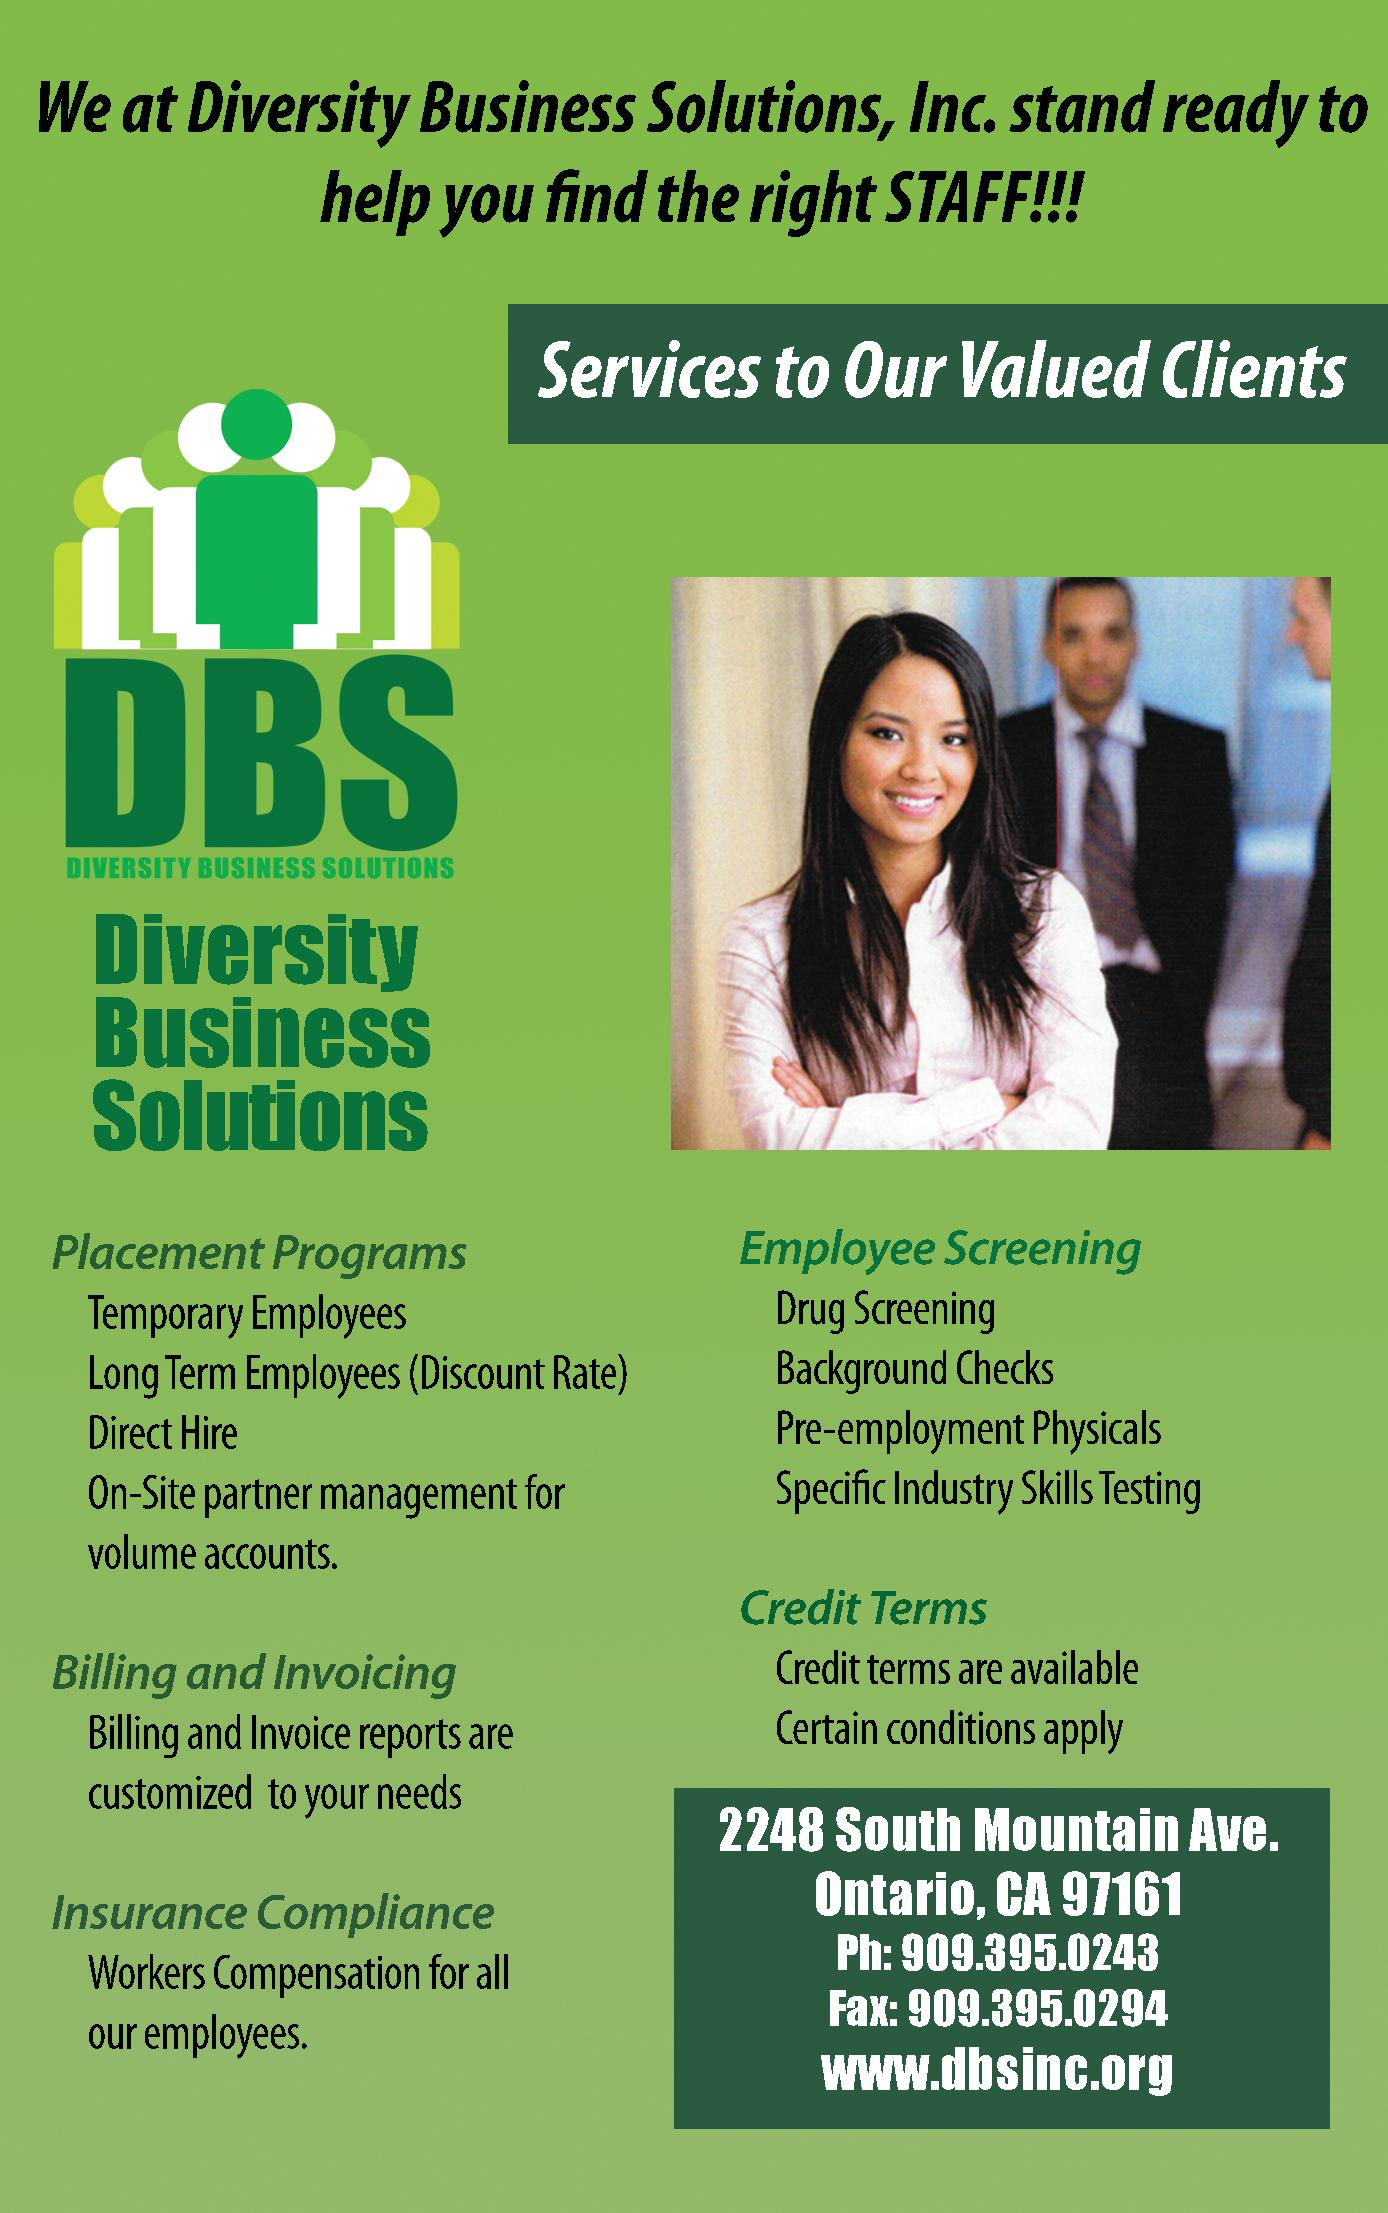 Diversity Business Solutions, Inc